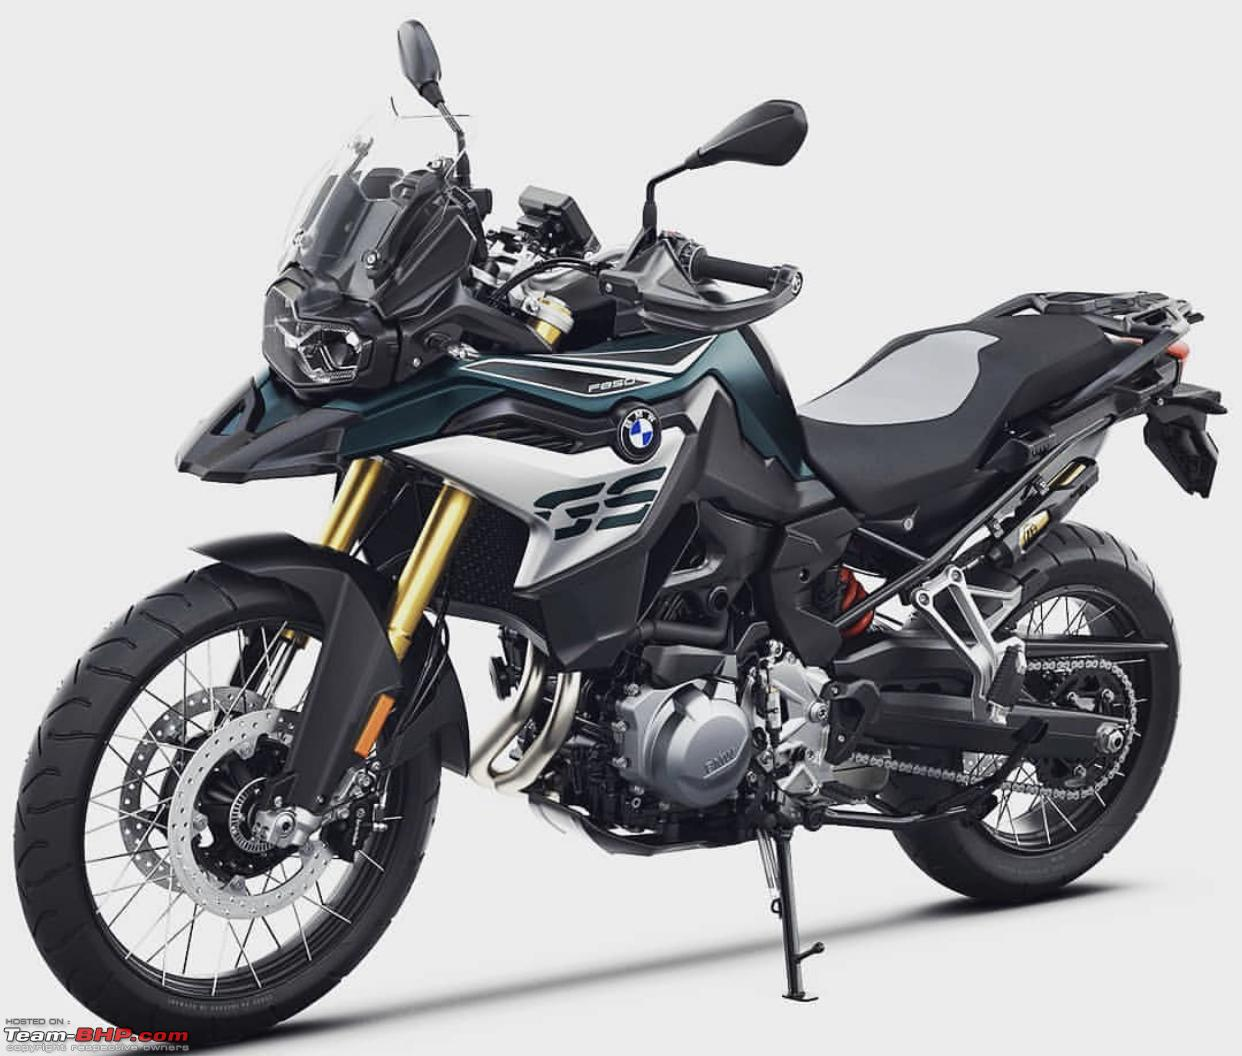 BMW F 750 GS & F 850 GS Enduro Bikes Launched